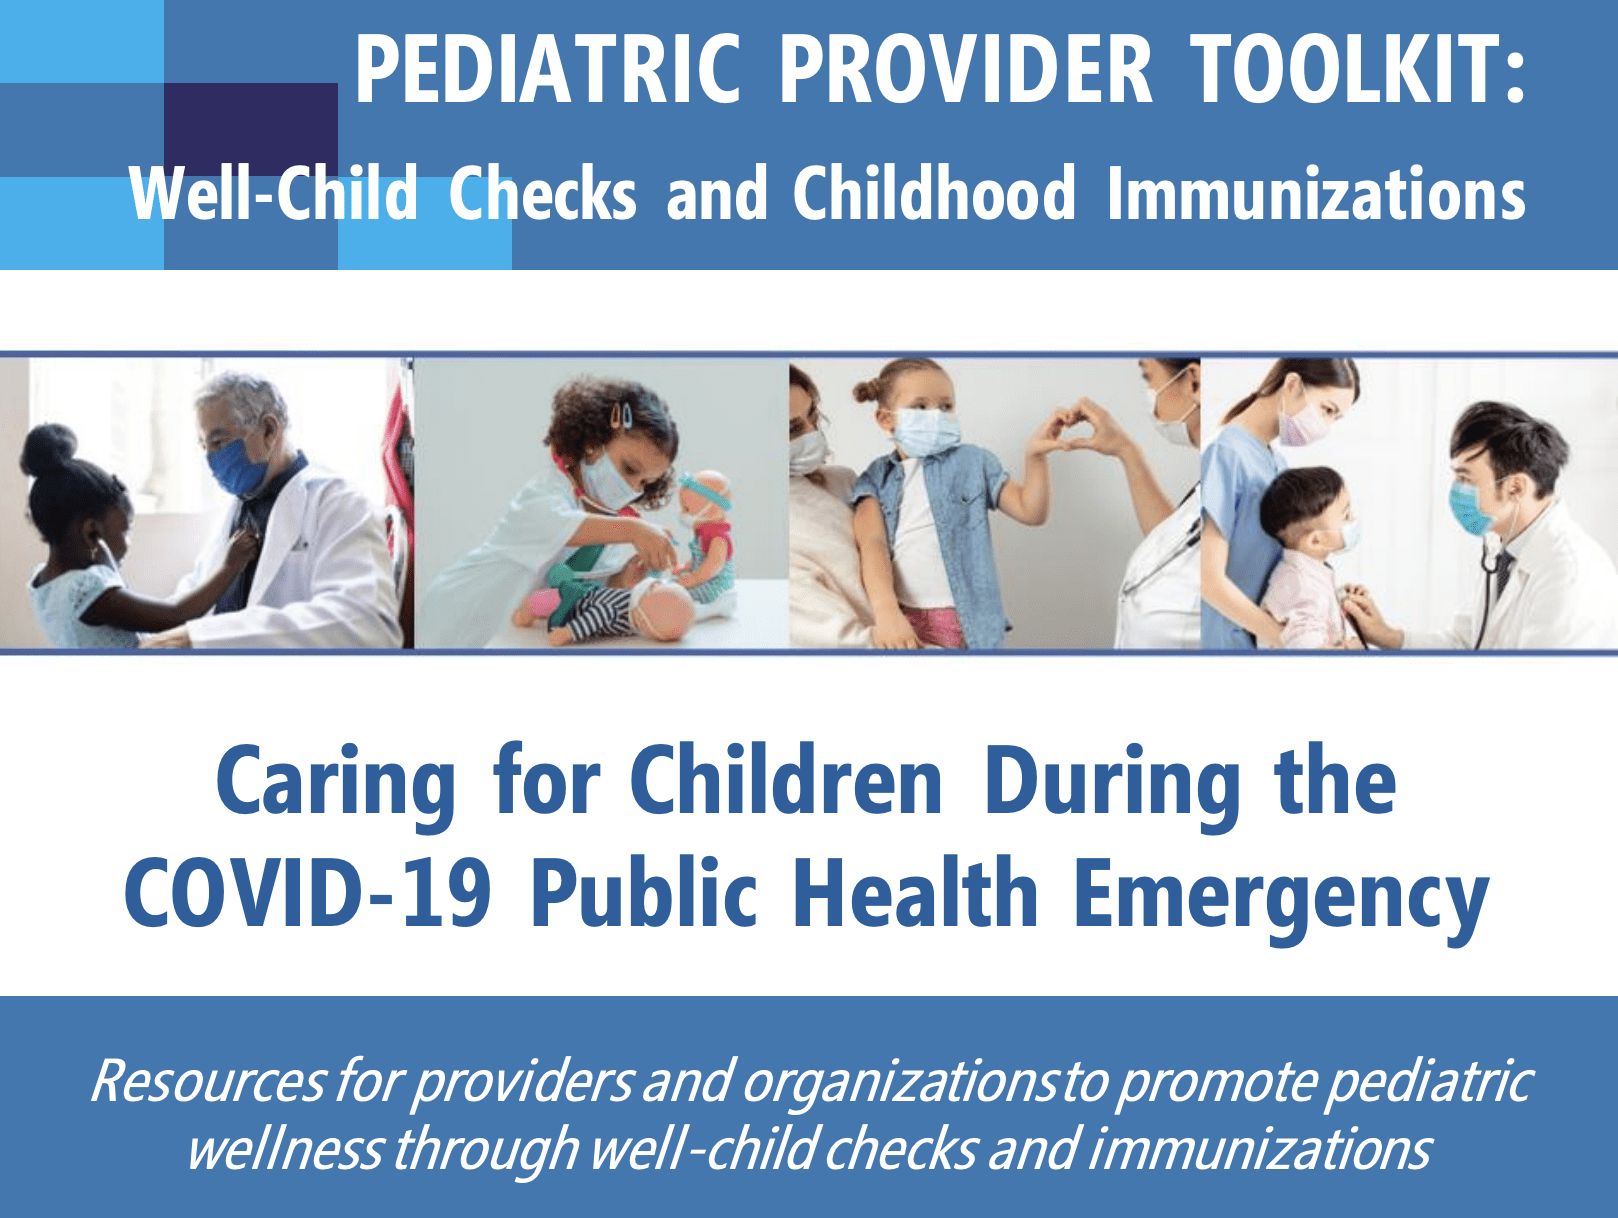 Provider Toolkit: Caring for Children During COVID 19